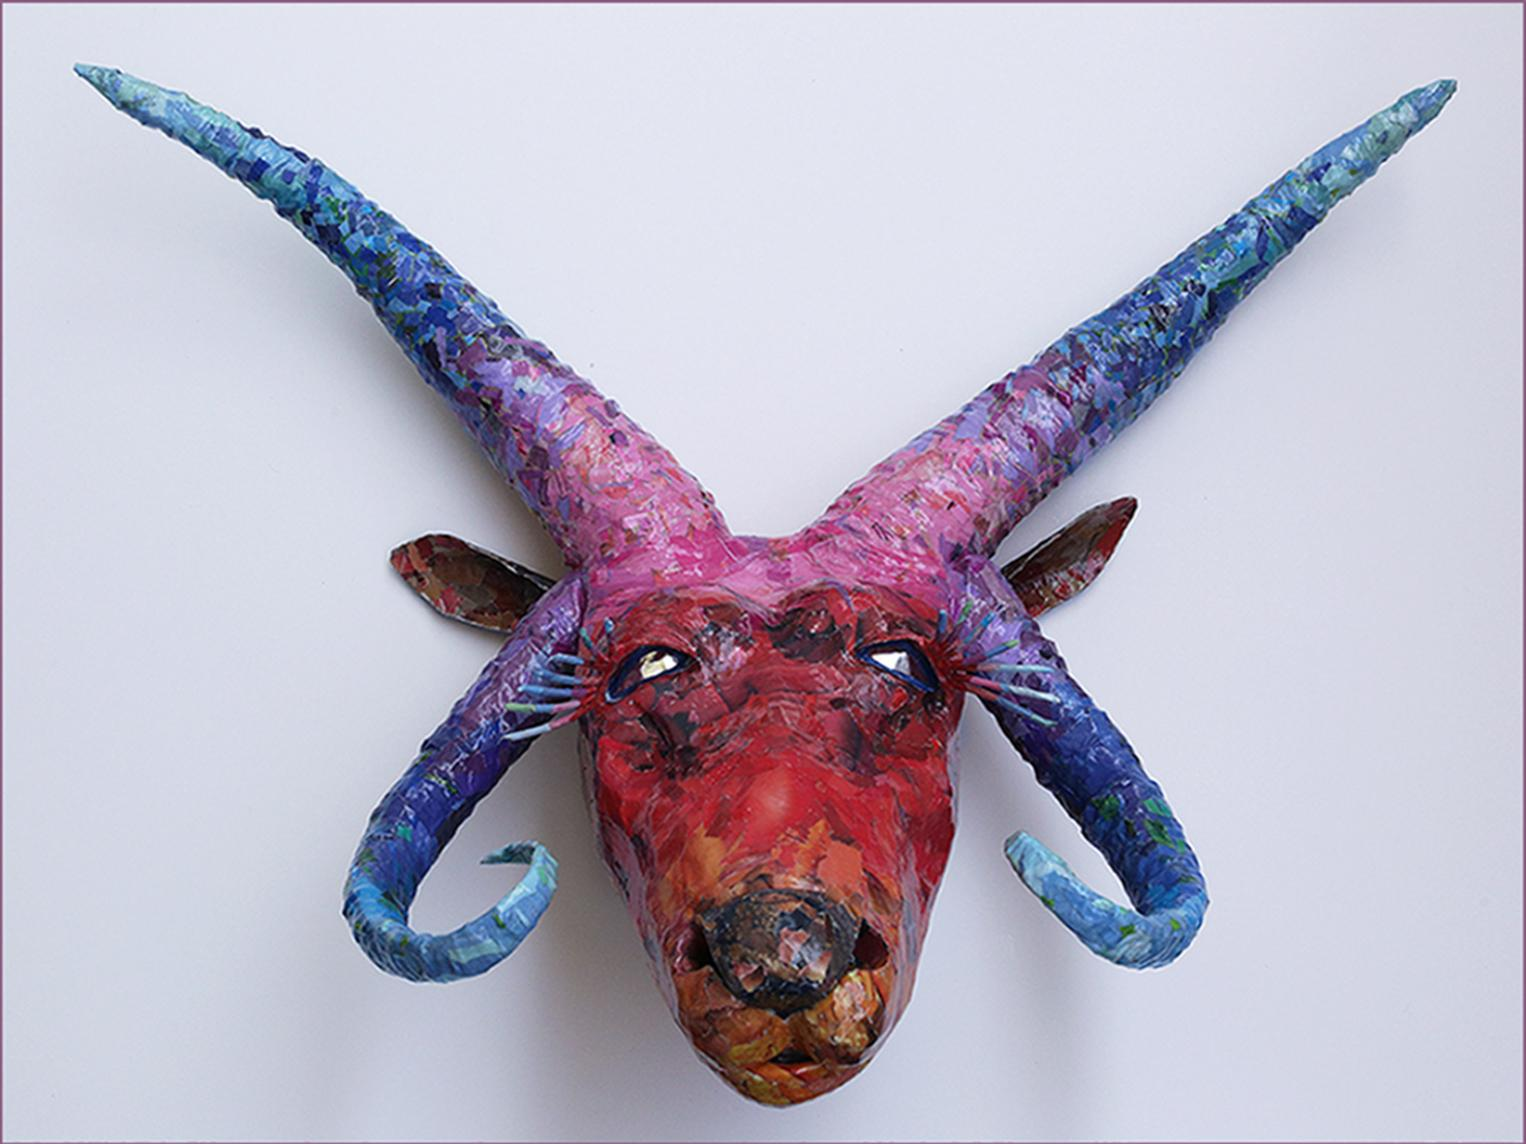 Manx - Colorful & Playful Sculpture of Endangered Animal Species in Purple + Red